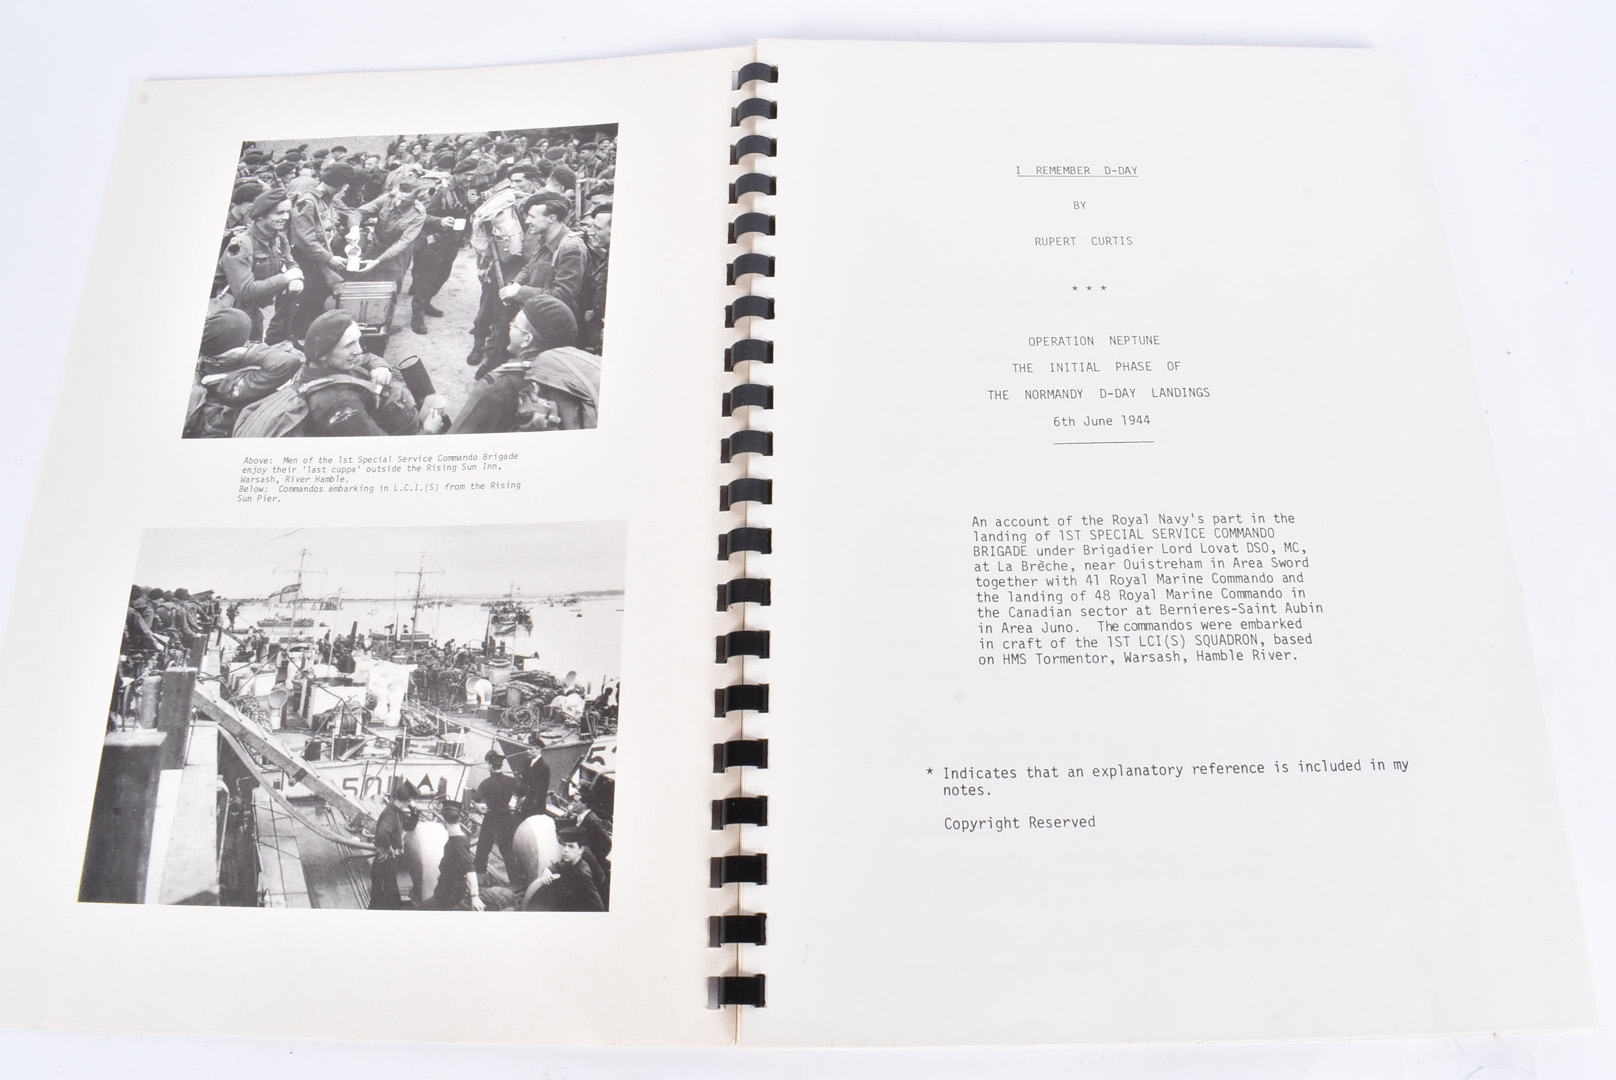 Chronicles of D-Day by Rupert Curtis, I Remember D-Day, Operation Neptune, The Initial Phase of - Image 3 of 3